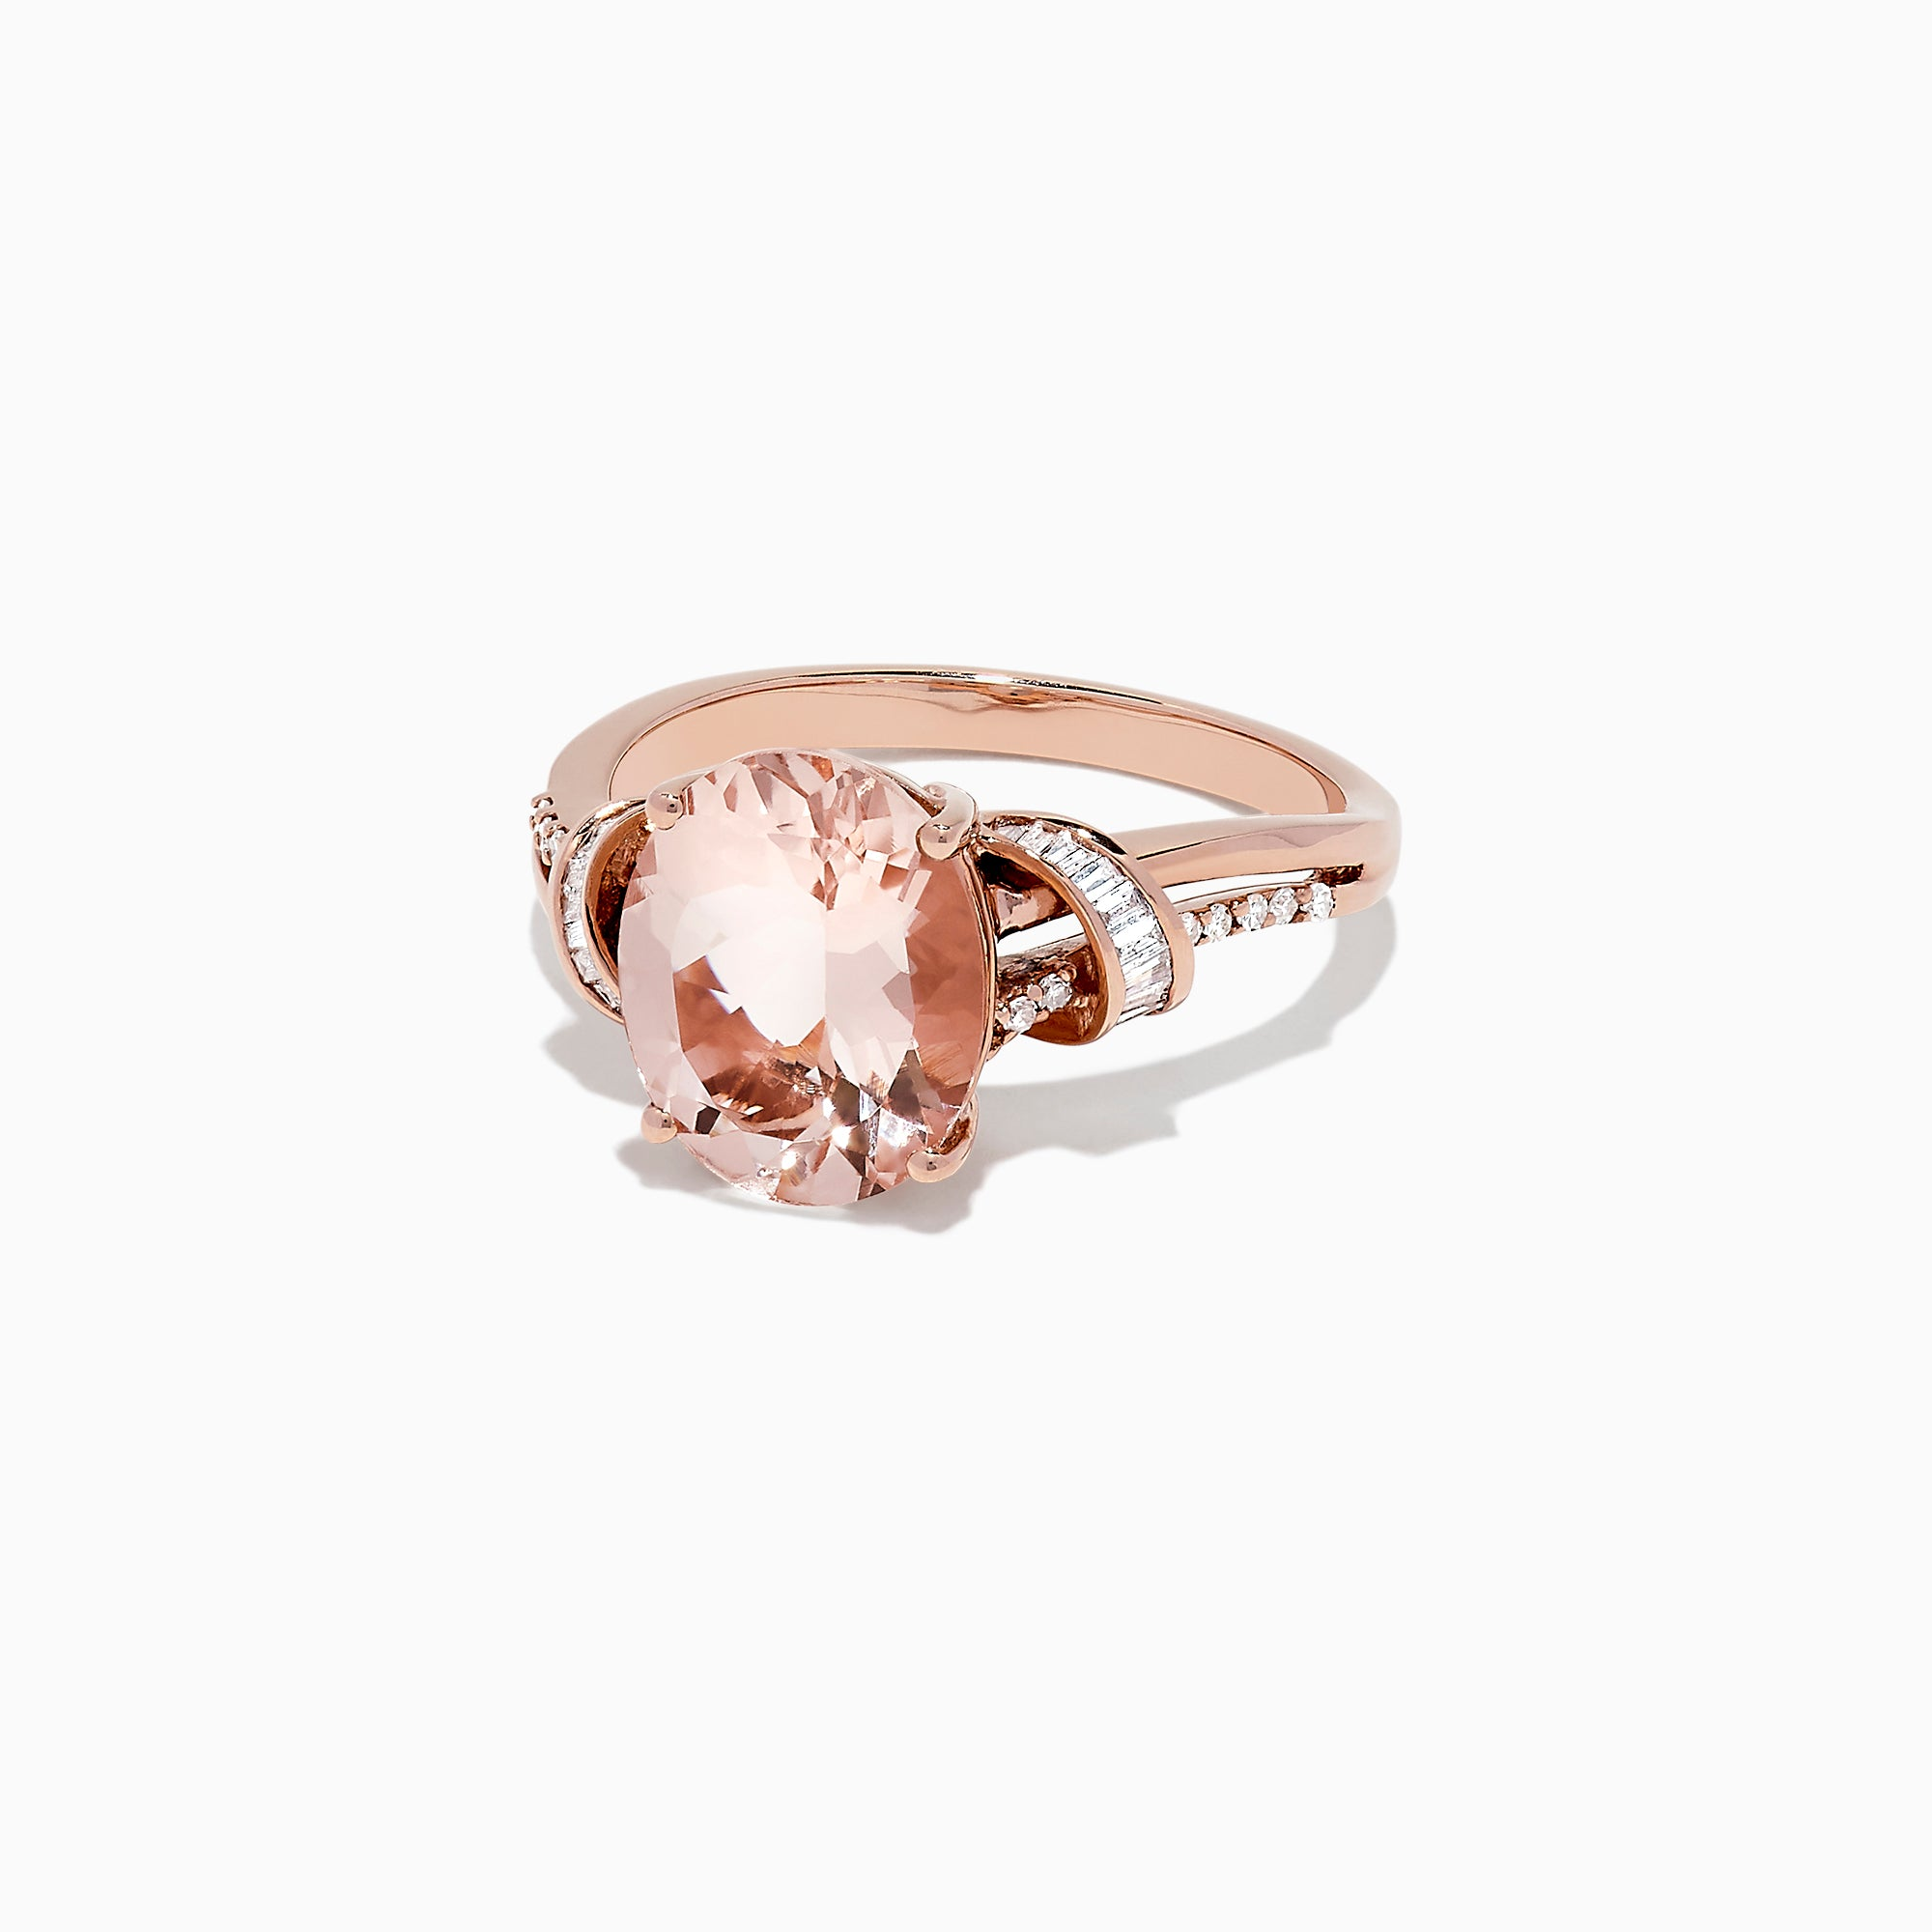 Effy Blush 14K Rose Gold Morganite and Diamond Ring, 3.37 TCW